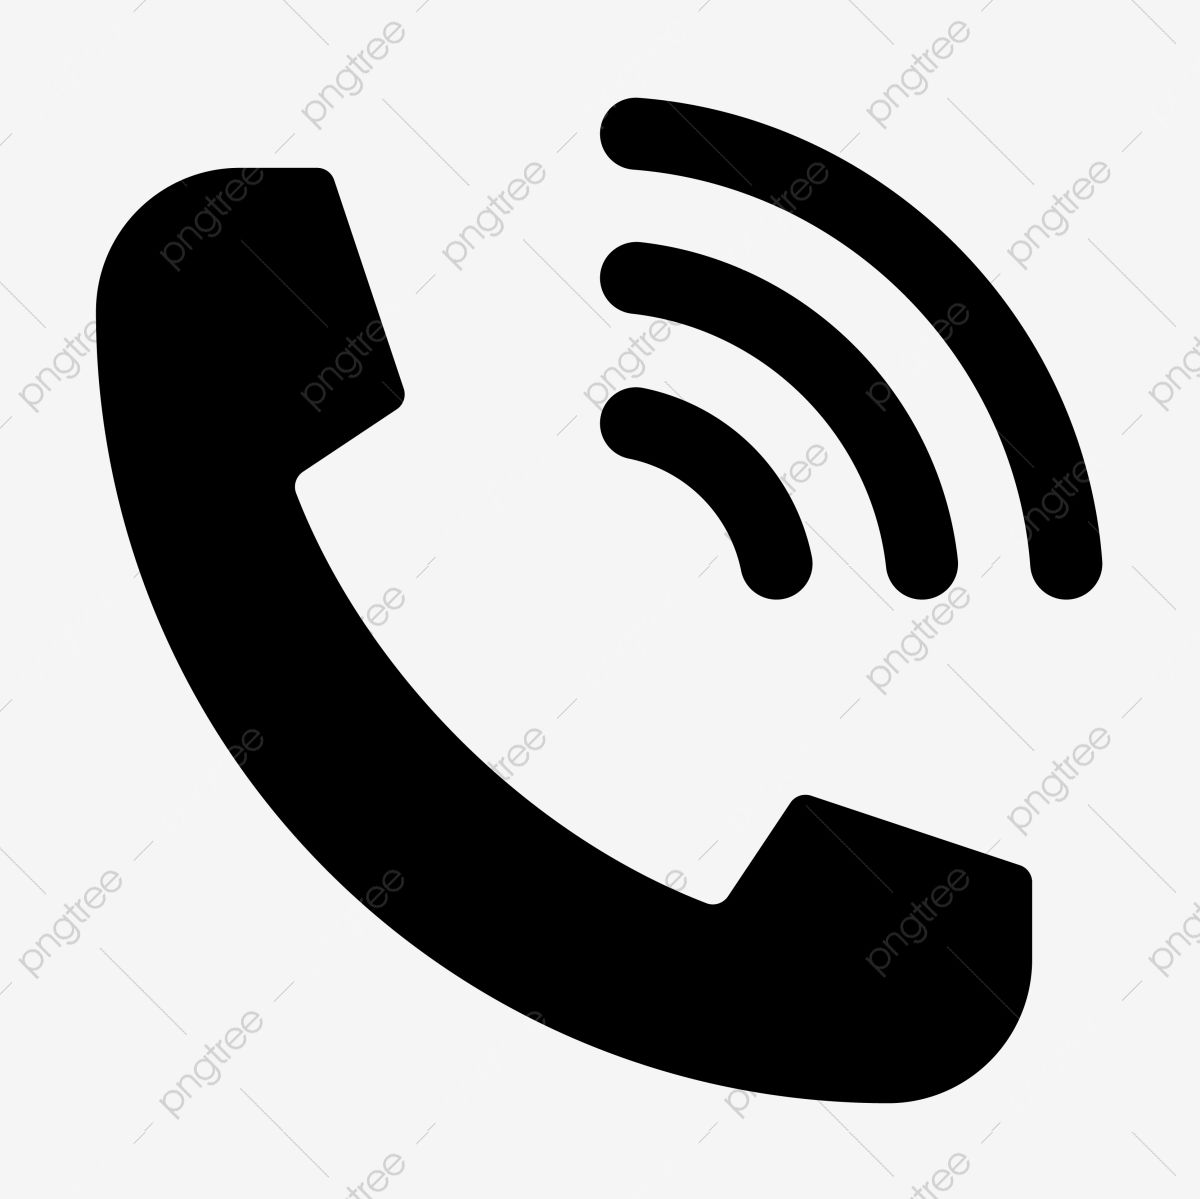 Calling Telephone Glyph Icon Vector Telephone Icons Calling Call Png And Vector With Transparent Background For Free Download Glyph Icon Glyphs Icon Set